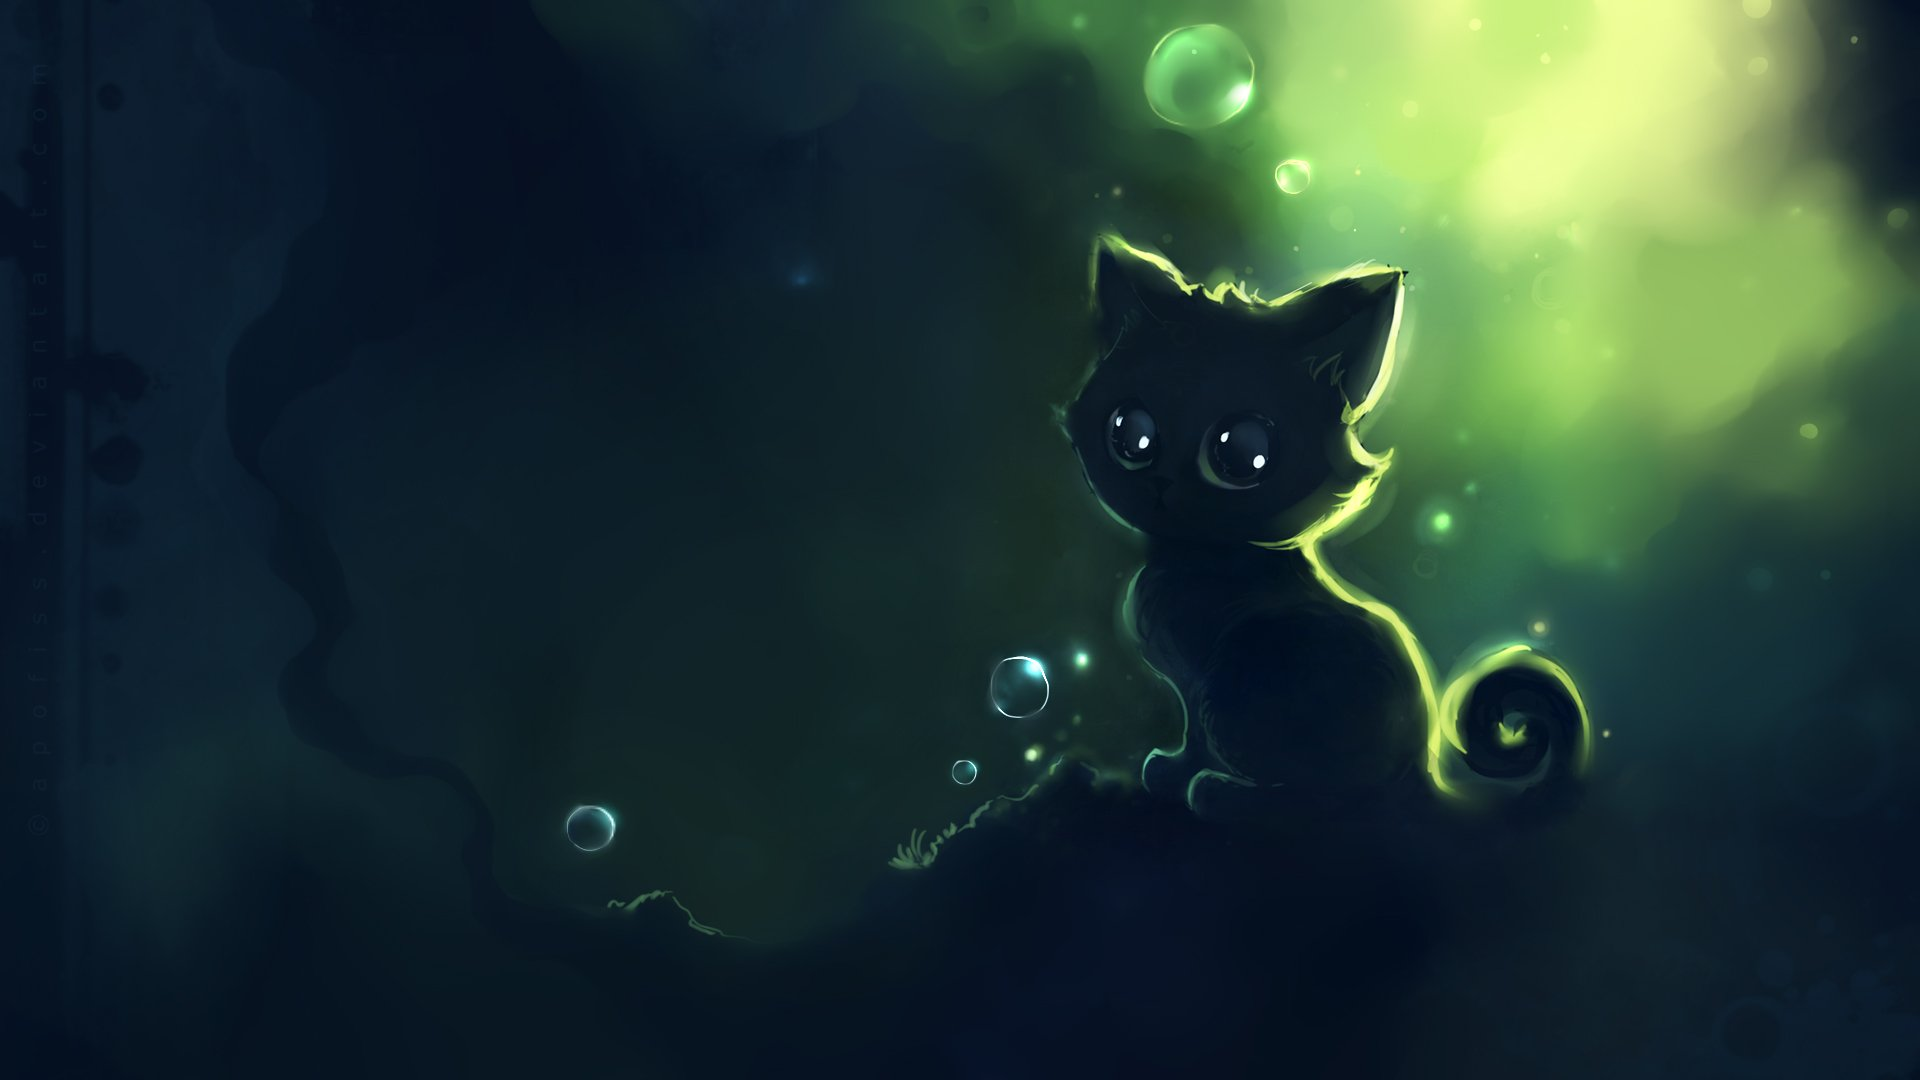 Cats Images Anime Kitty Hd Wallpaper And Background Photos 41243474